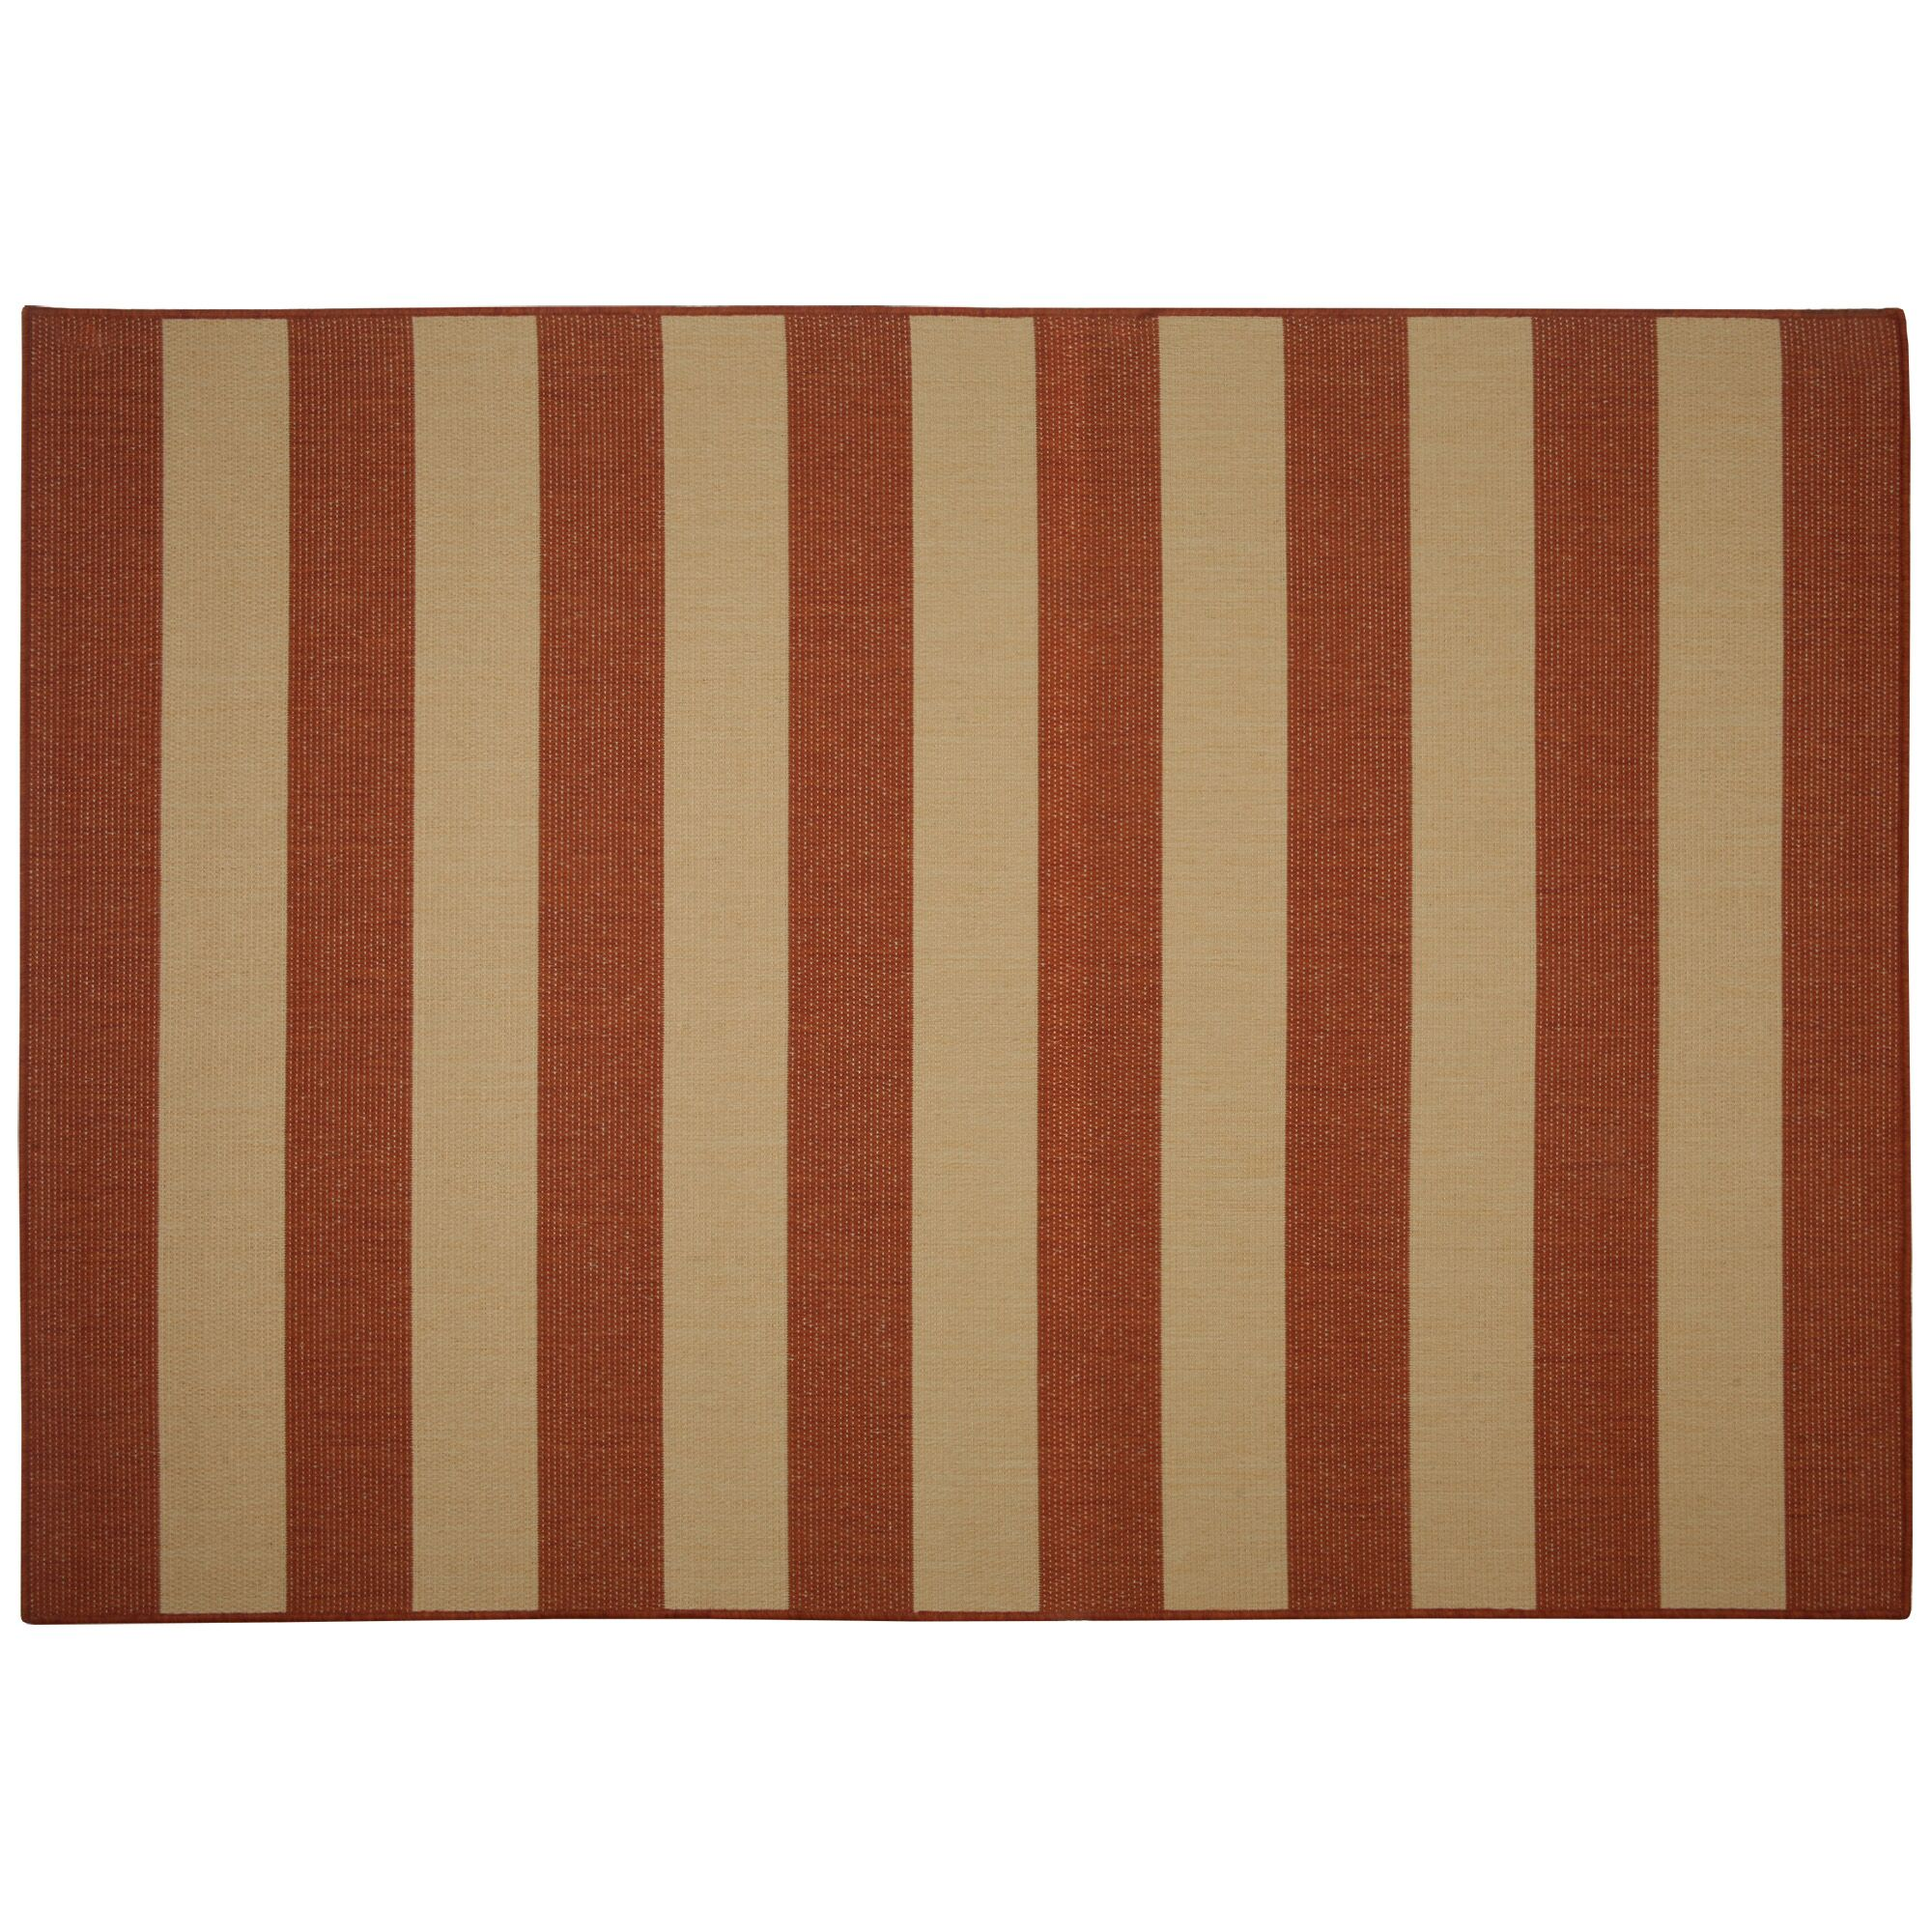 Edgemont Red Stripe Indoor/Outdoor Area Rug Rug Size: Rectangle 7' x 10'